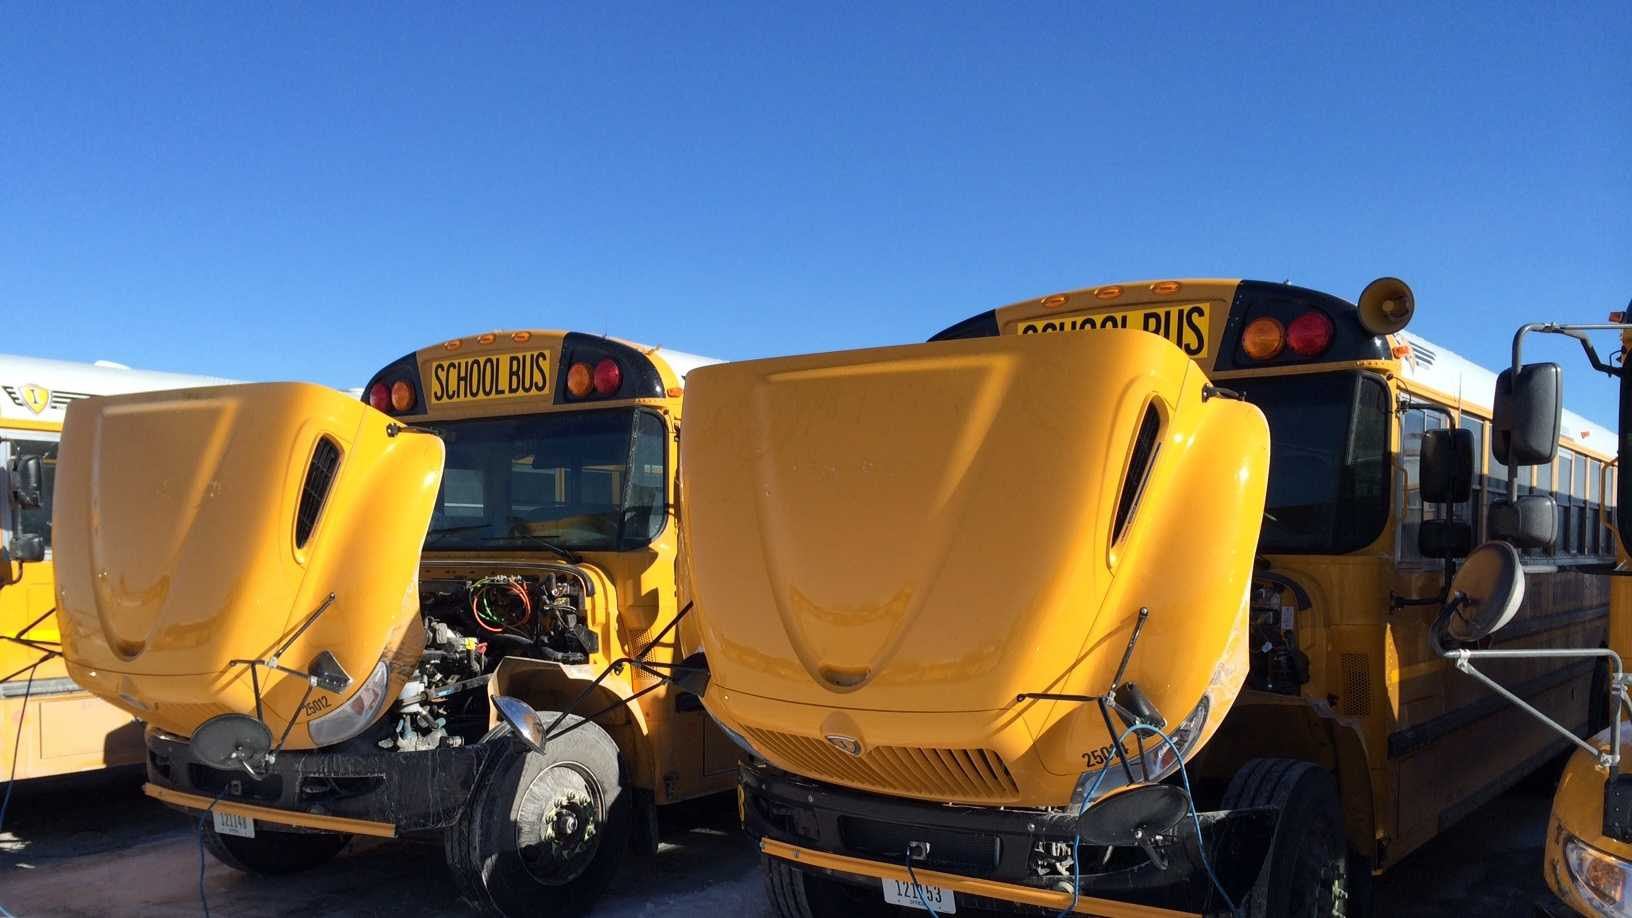 Too cold for school bus